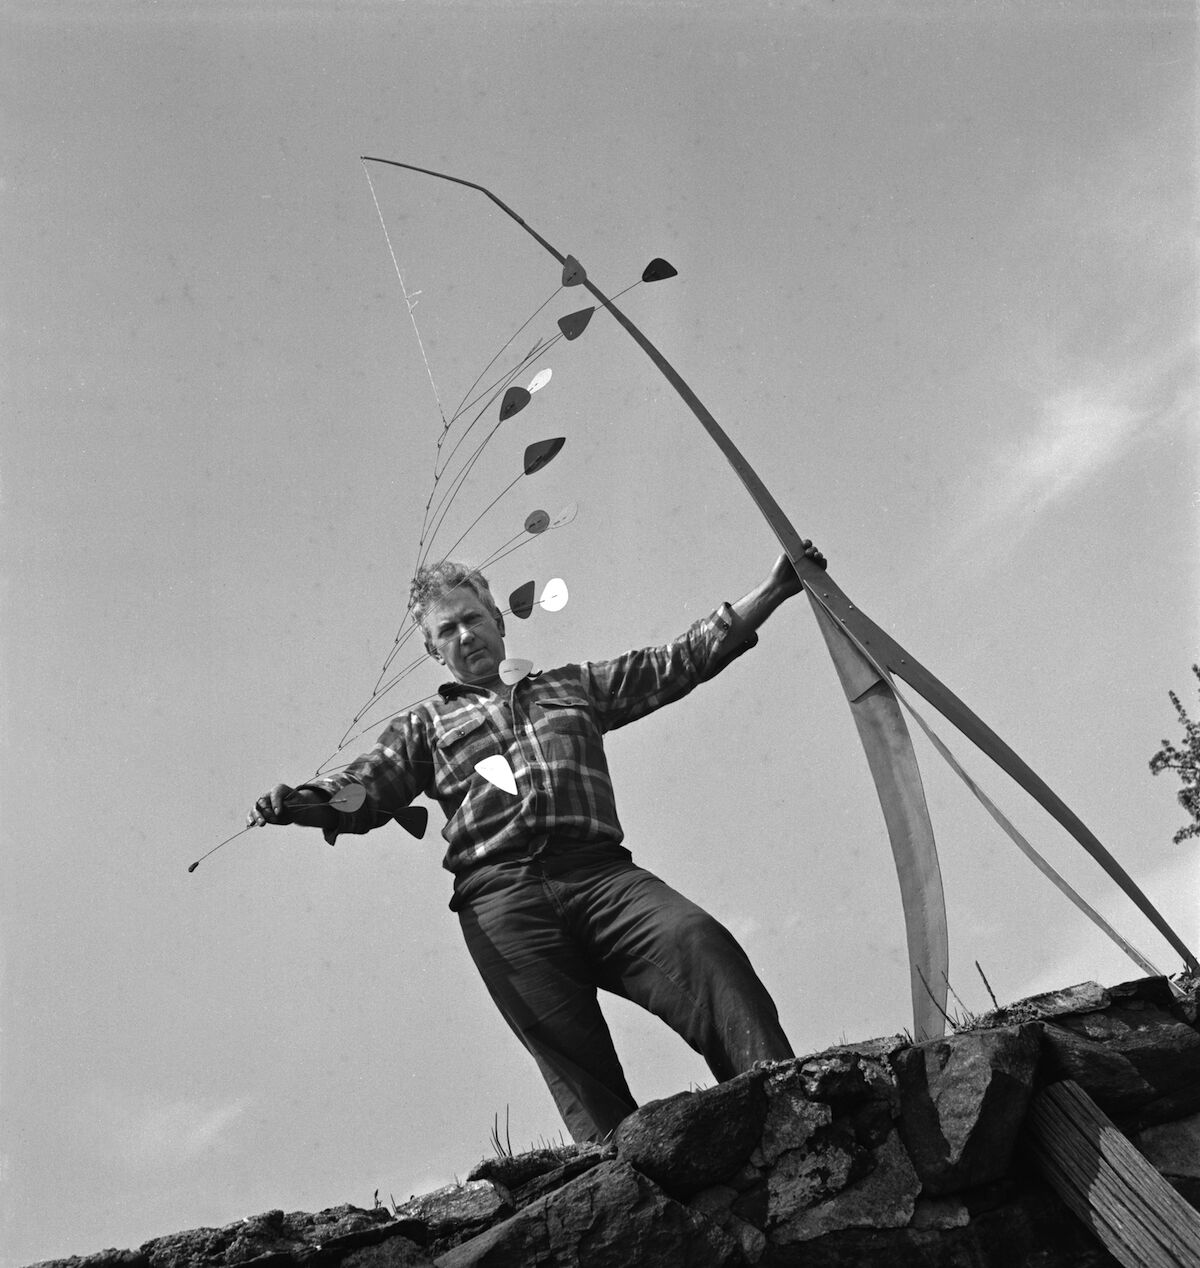 Calder with Giraffe (1941), Roxbury, 1941. Photo courtesy Calder Foundation, New York / Art Resource, New York. Artist Copyright: © 2020 Calder Foundation, New York / Artists Rights Society (ARS), New York. Photo by Herbert Matter, © 2020 Calder Foundation, New York.